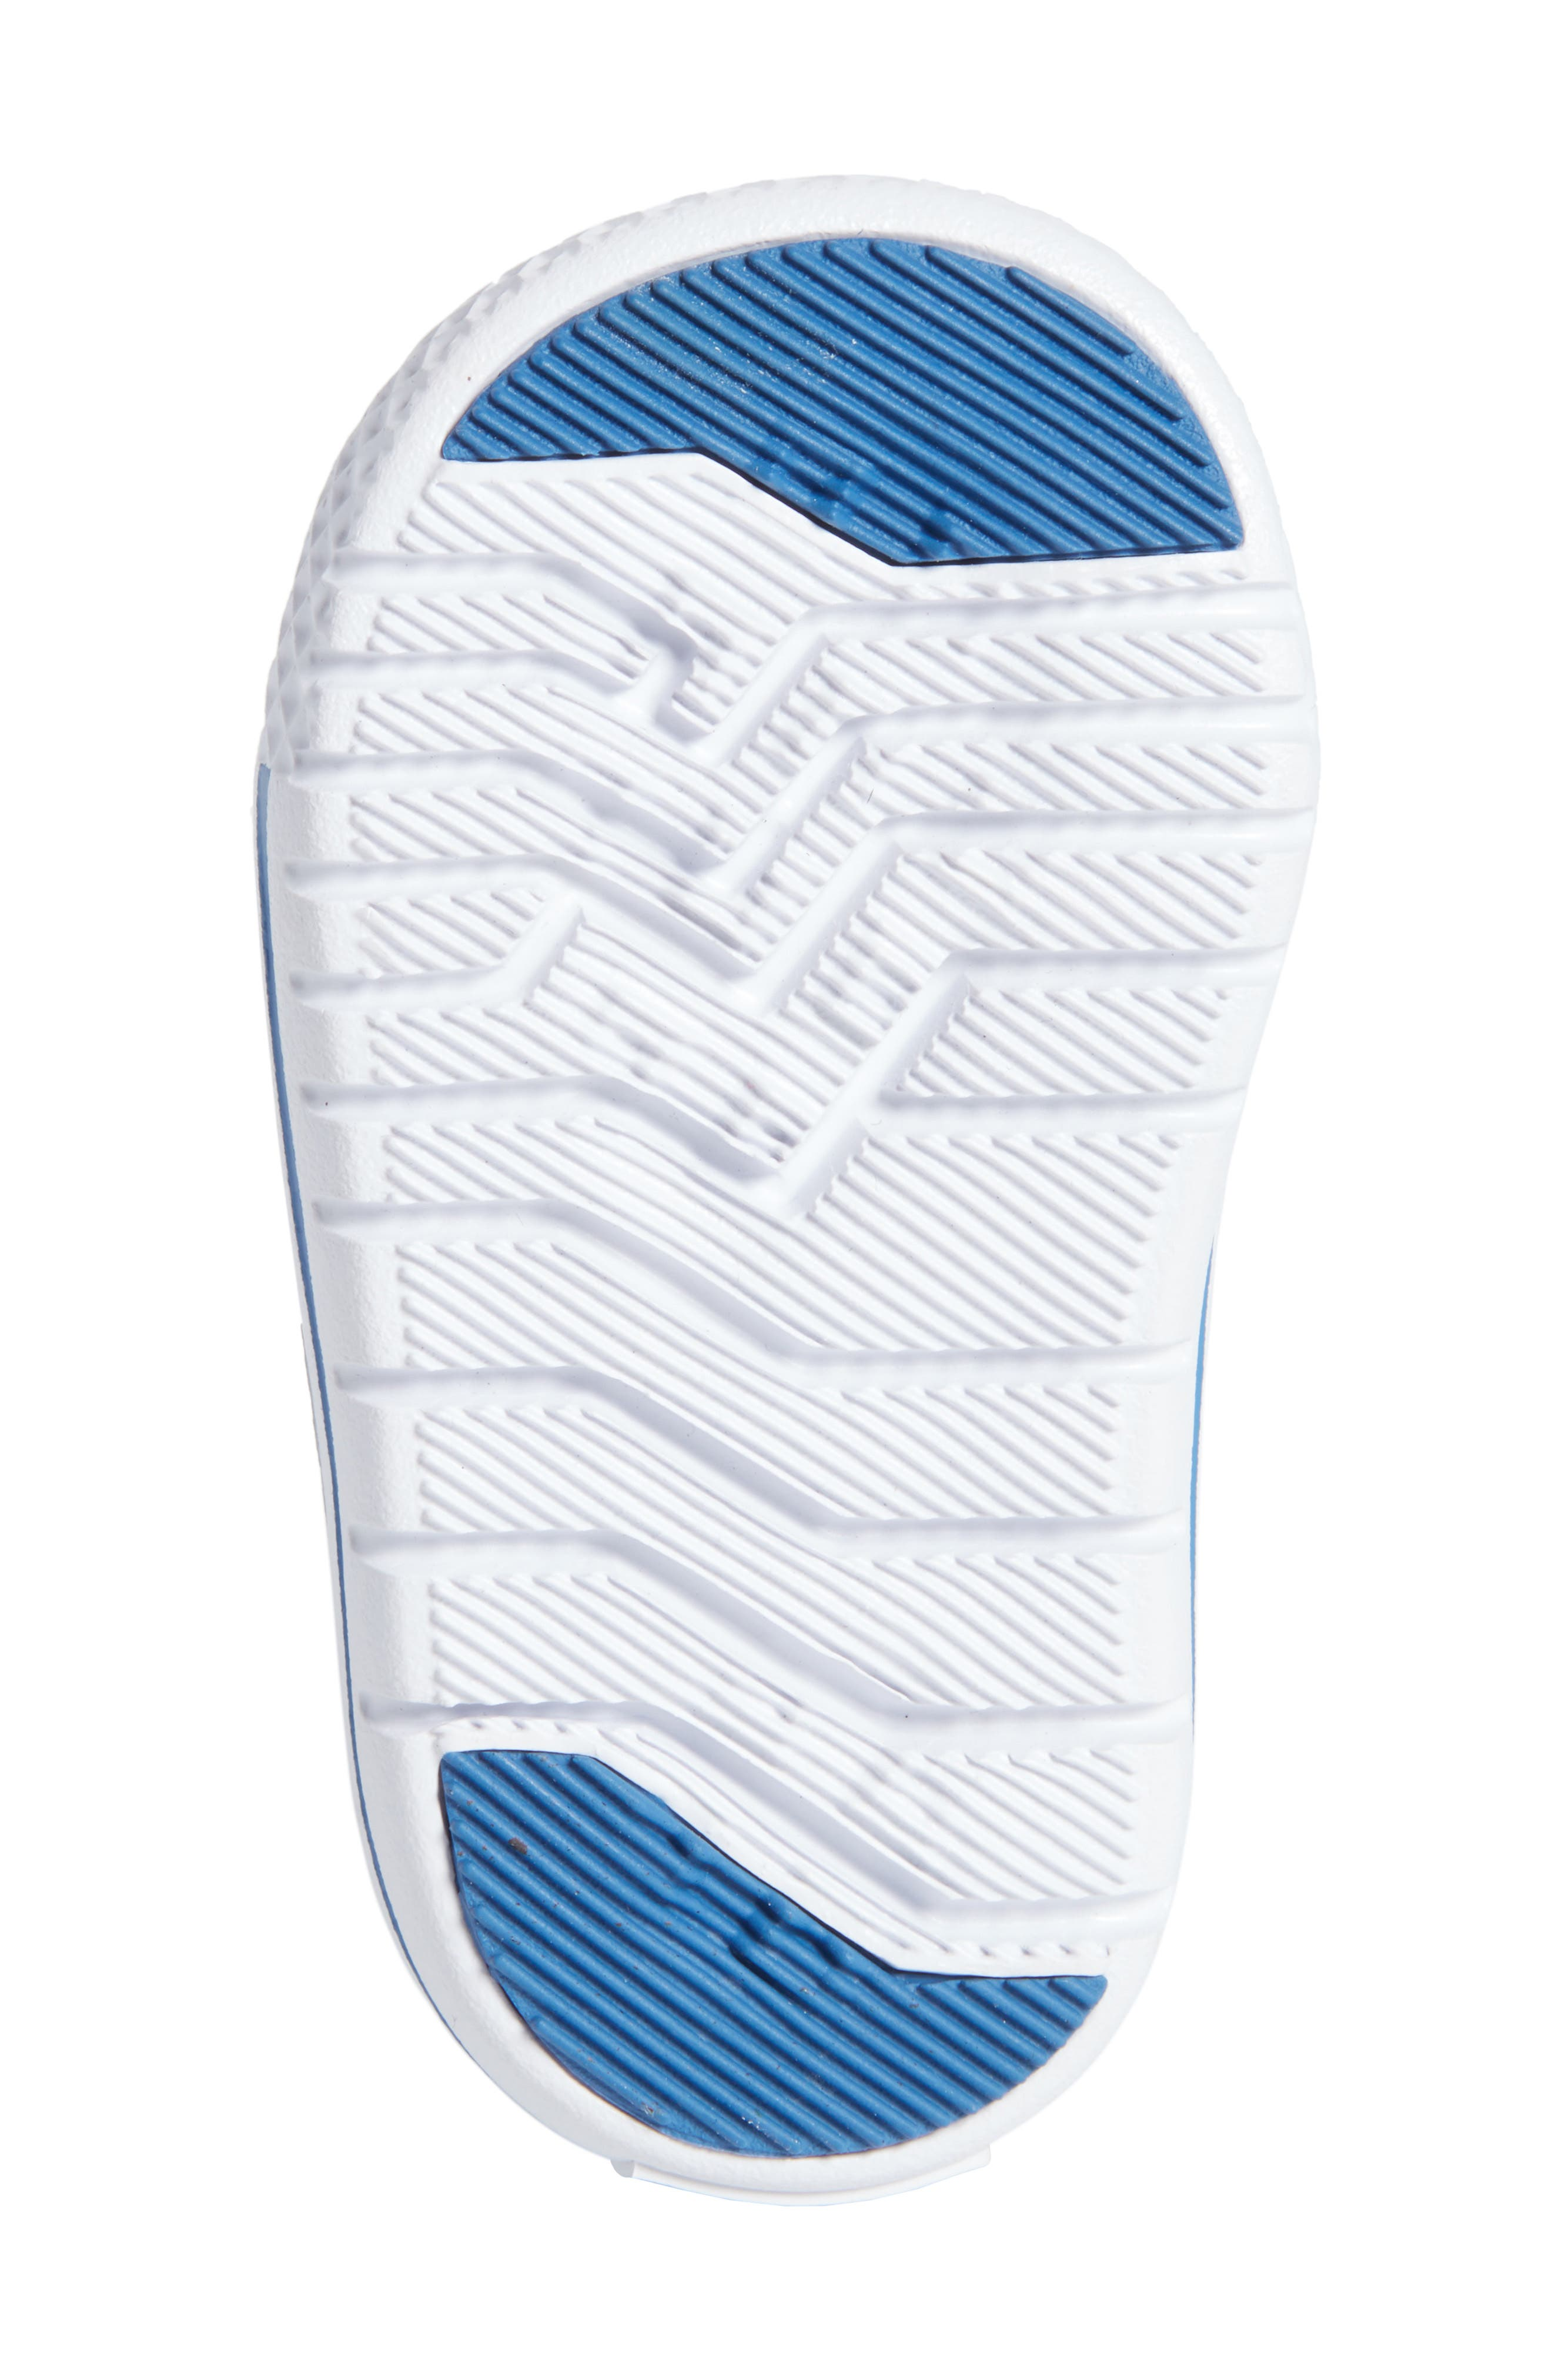 Chuck Taylor<sup>®</sup> All Star<sup>®</sup> Hyper Lite Slip-On Sneaker,                             Alternate thumbnail 6, color,                             020